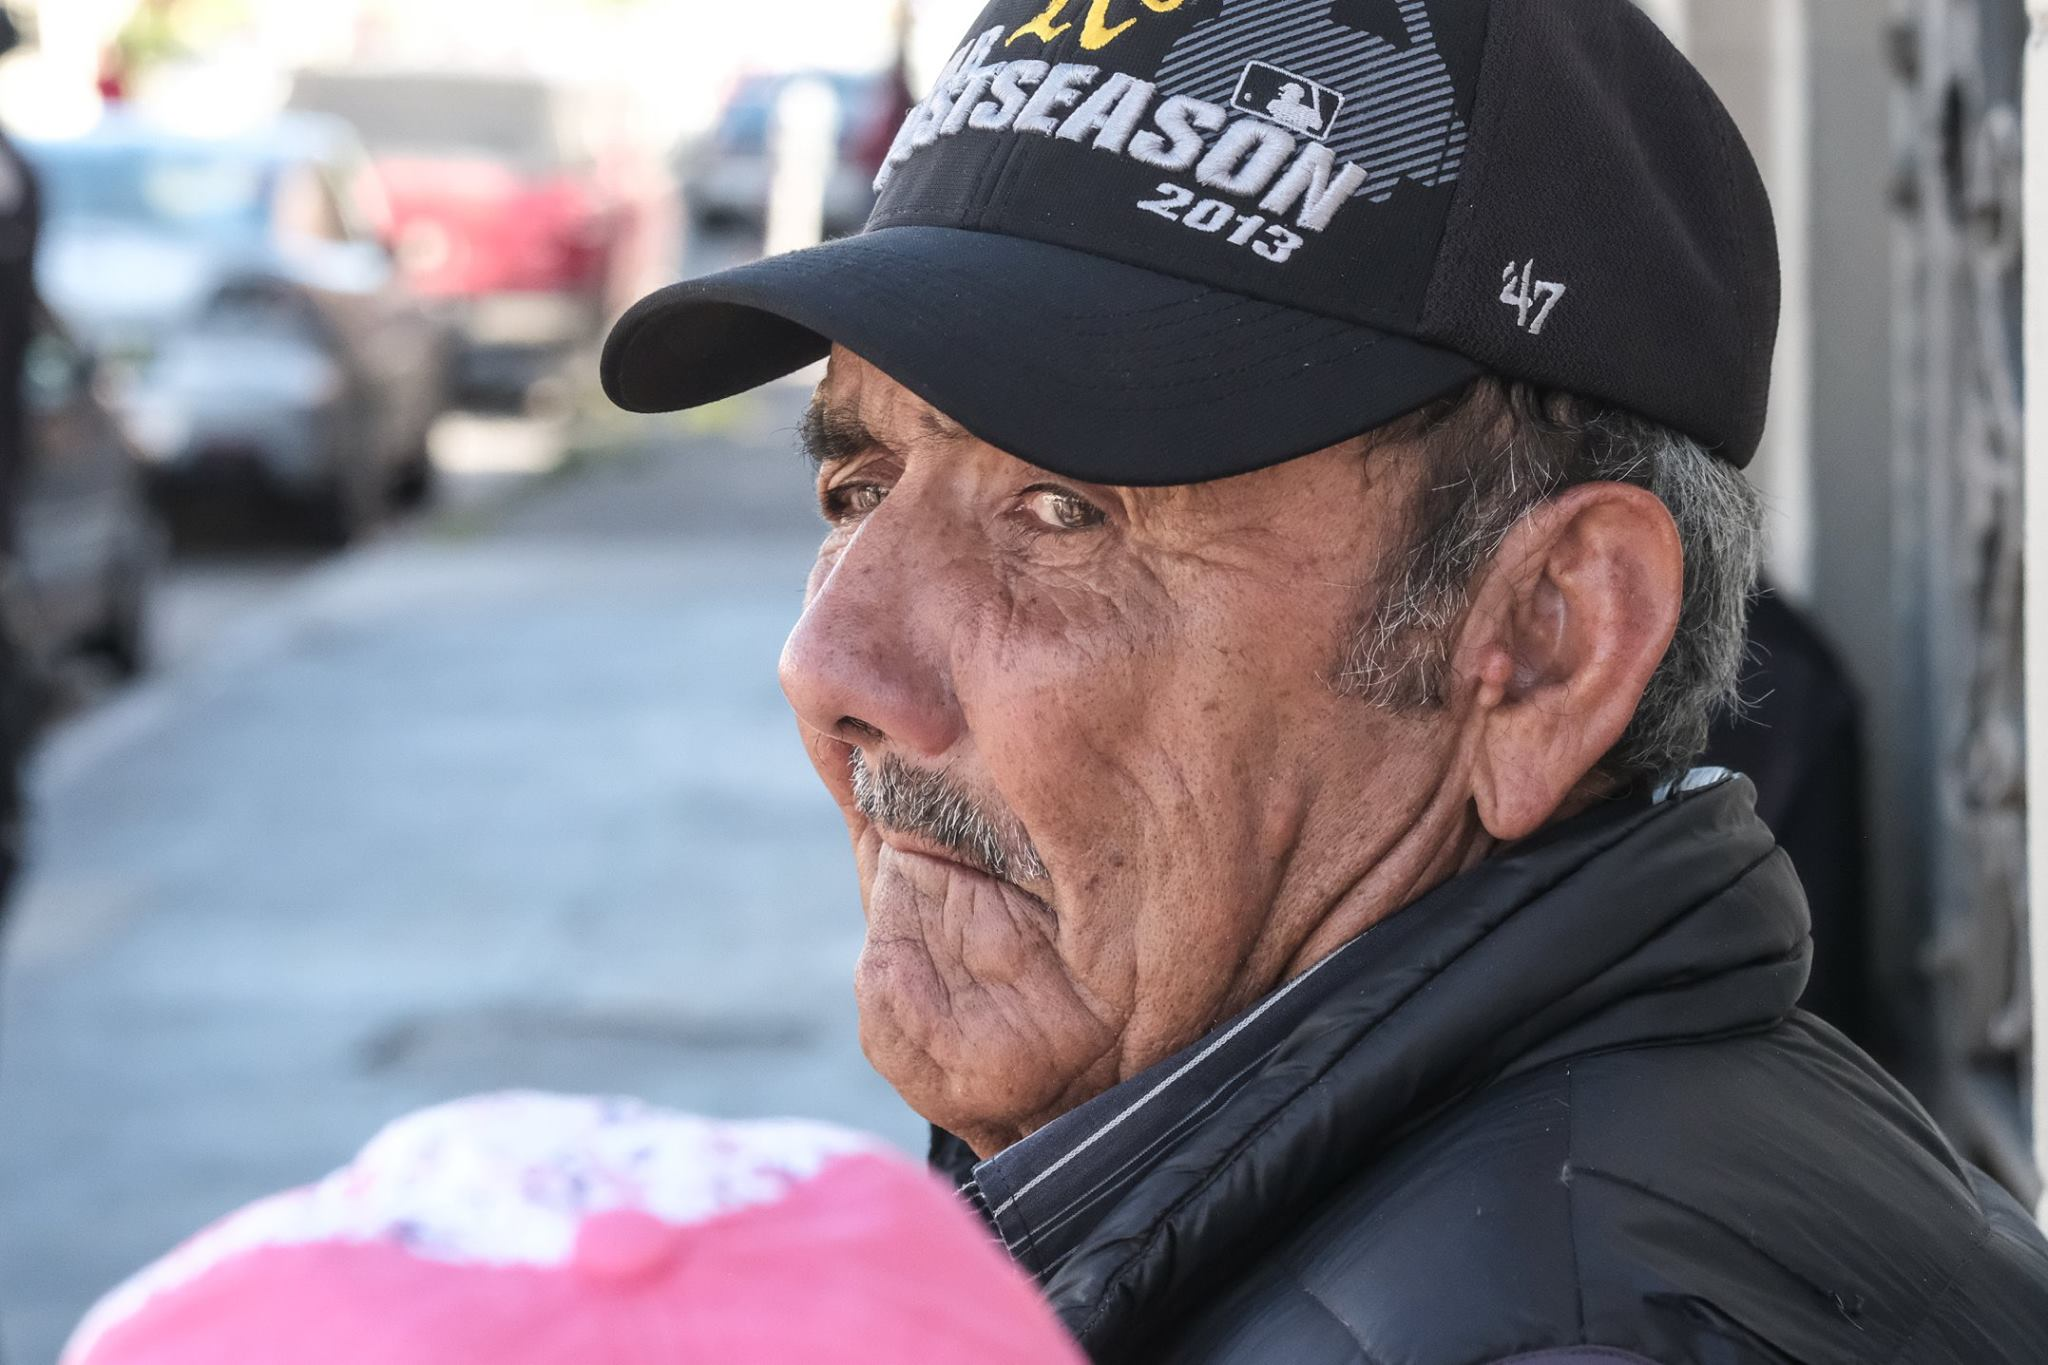 <div class='meta'><div class='origin-logo' data-origin='none'></div><span class='caption-text' data-credit='KGO-TV'>A man attends May Day festivities in Oakland, Calif. on Monday, May 1, 2017.</span></div>